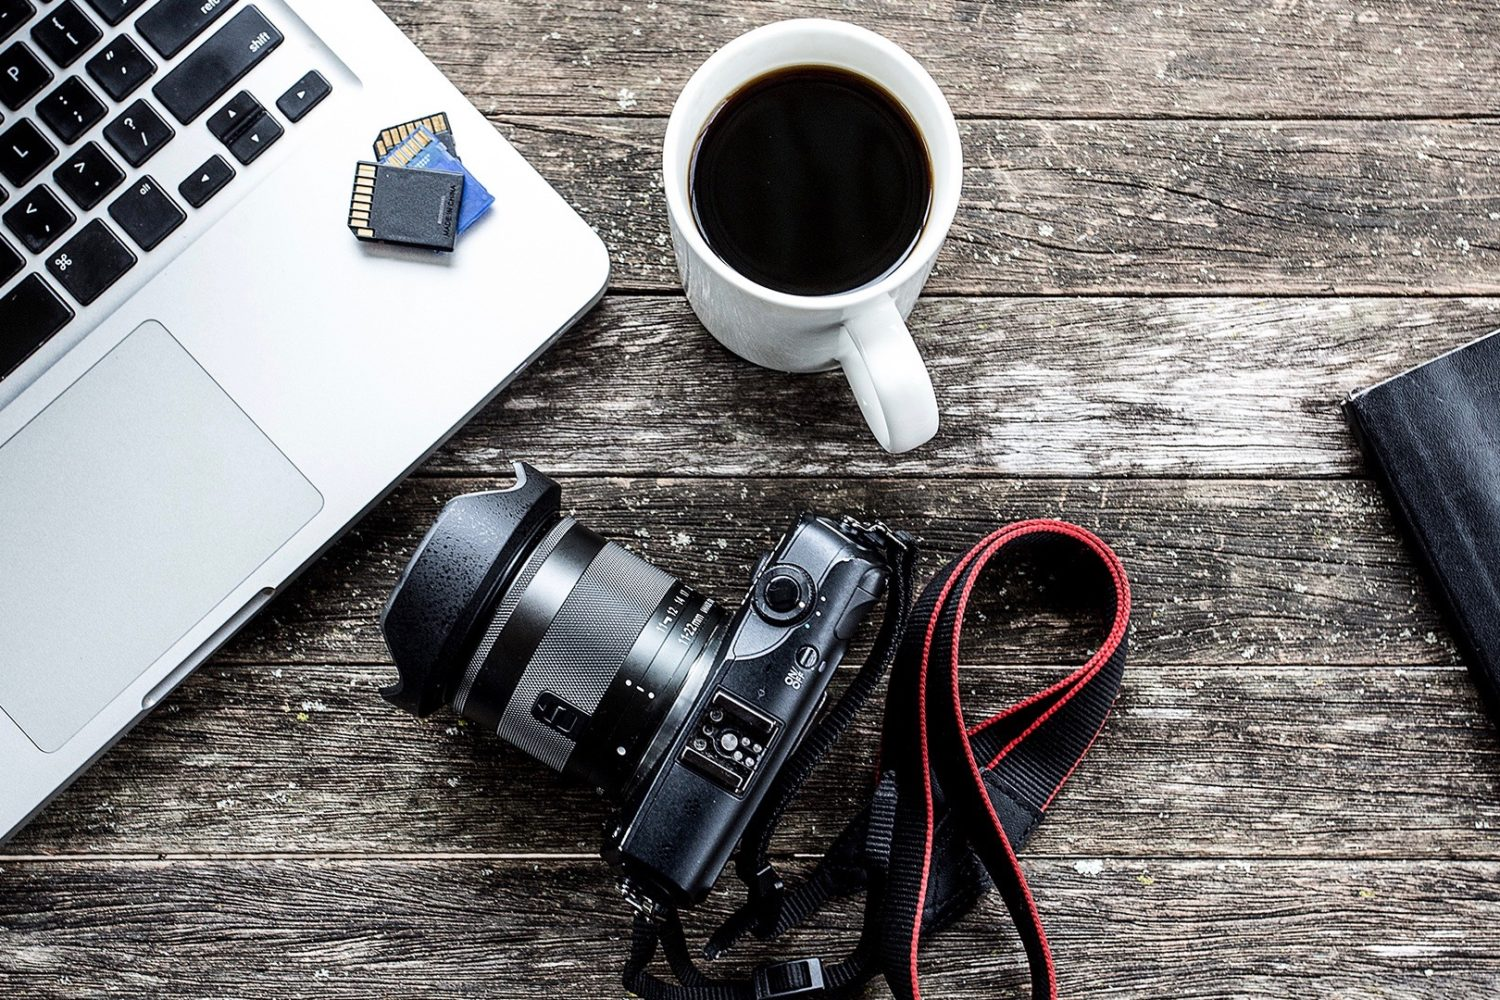 The Best Photo Editing Software For Photographers in 2019